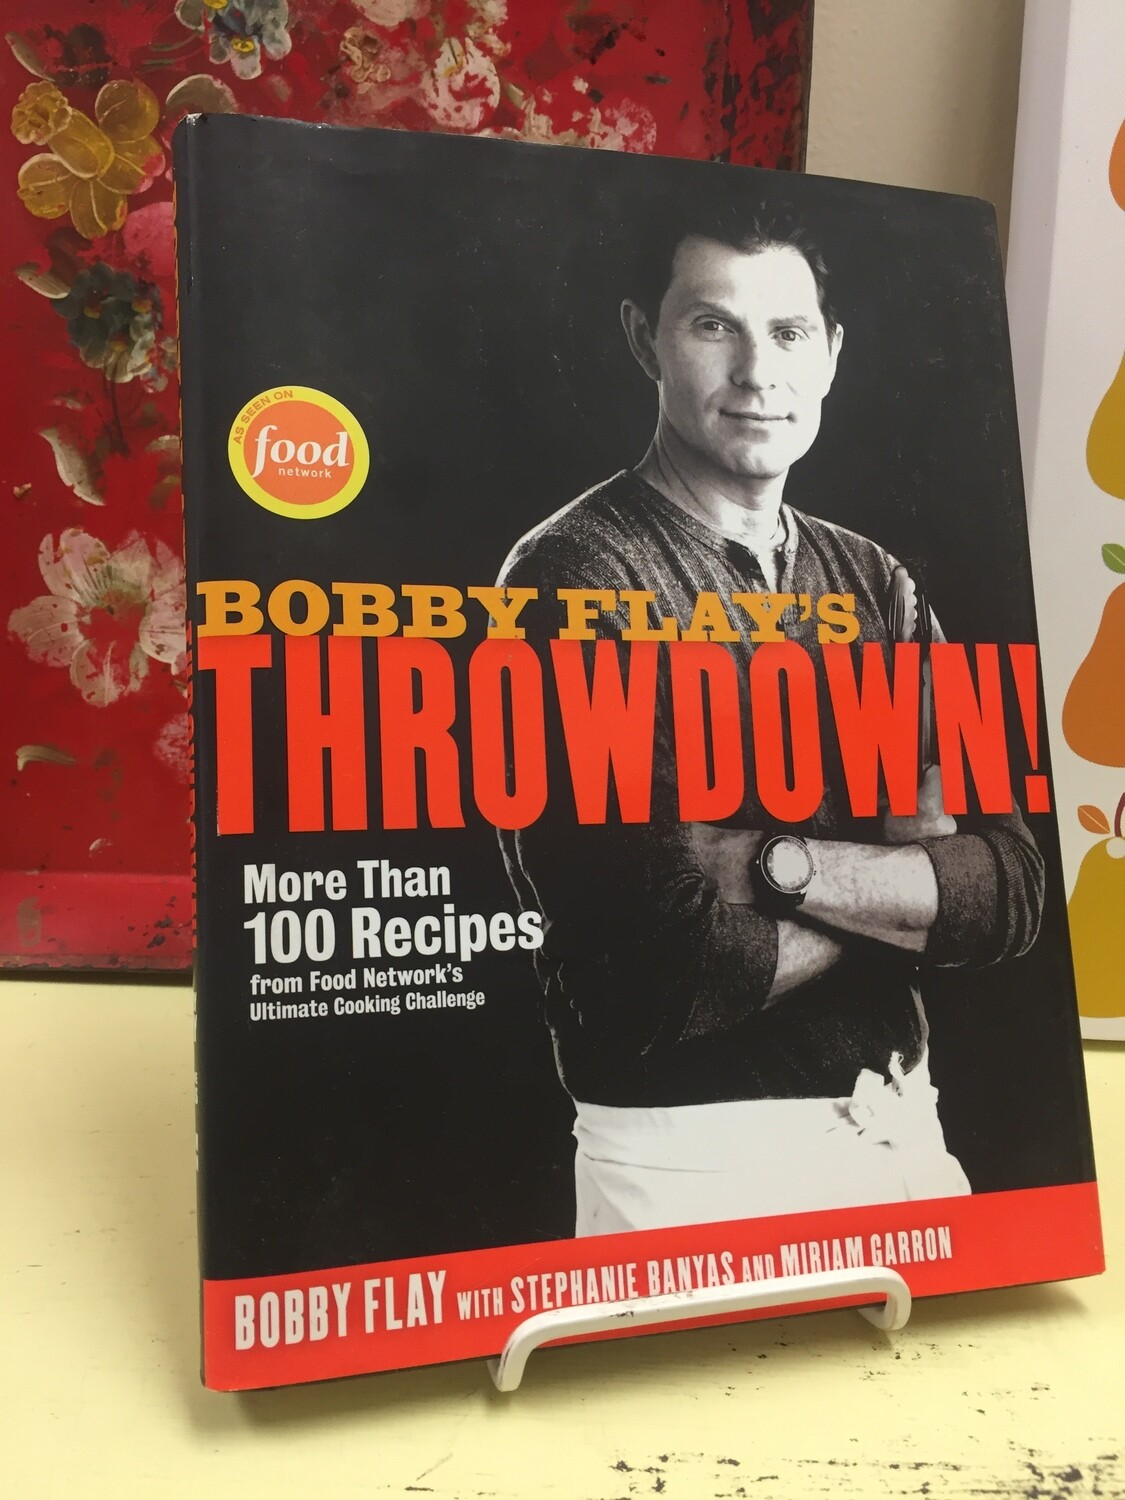 Bobby Flay's Throwdown